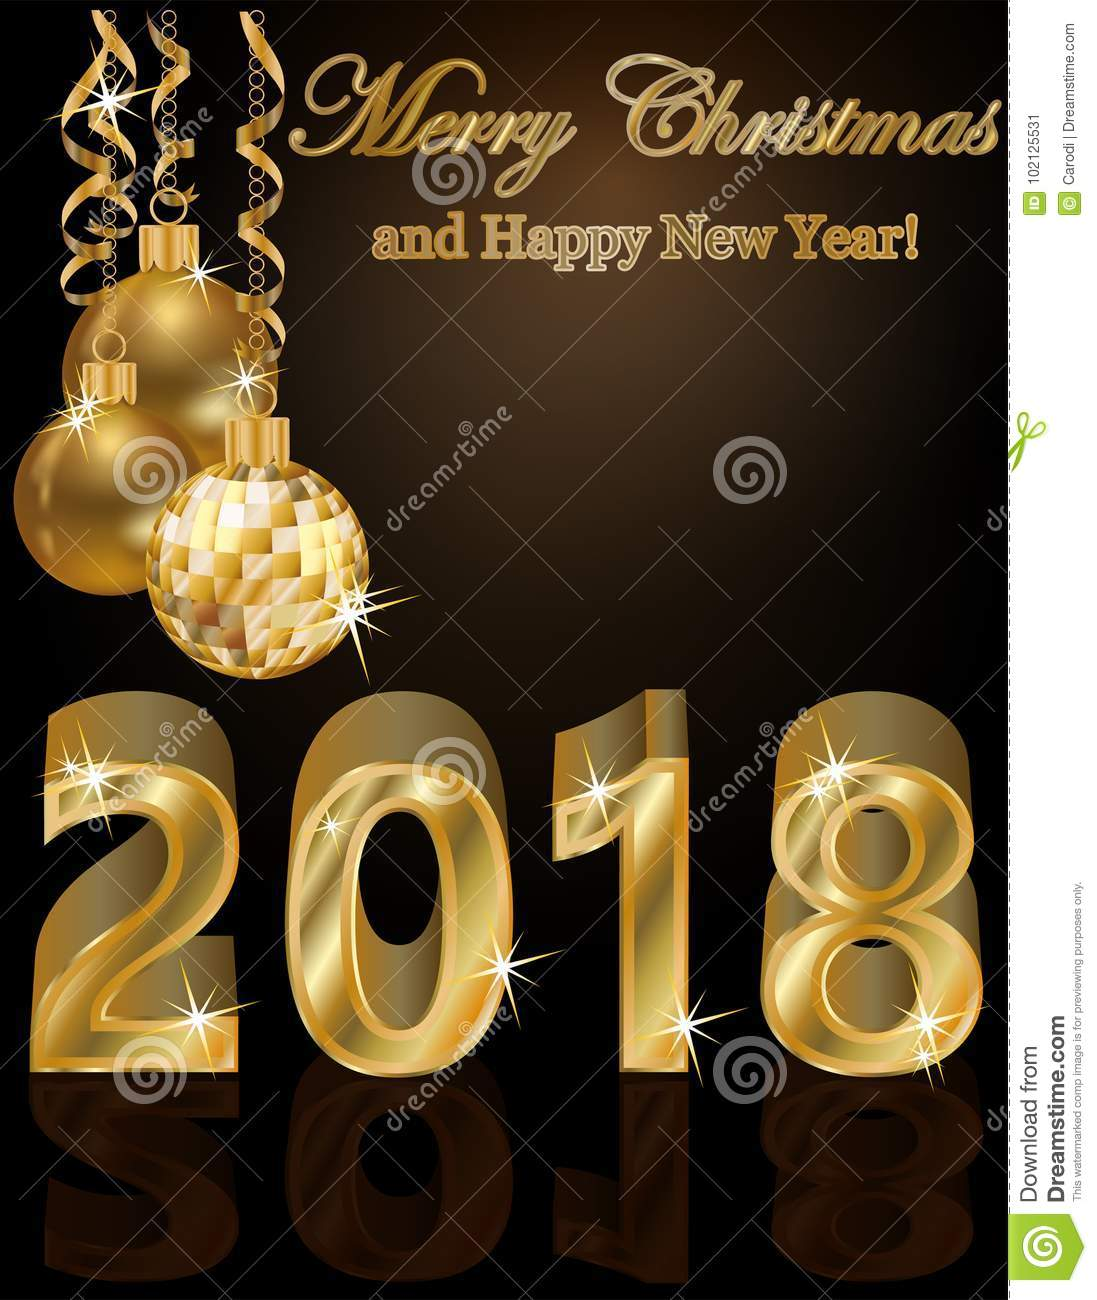 happy new 2018 year golden greeting wallpaper download preview